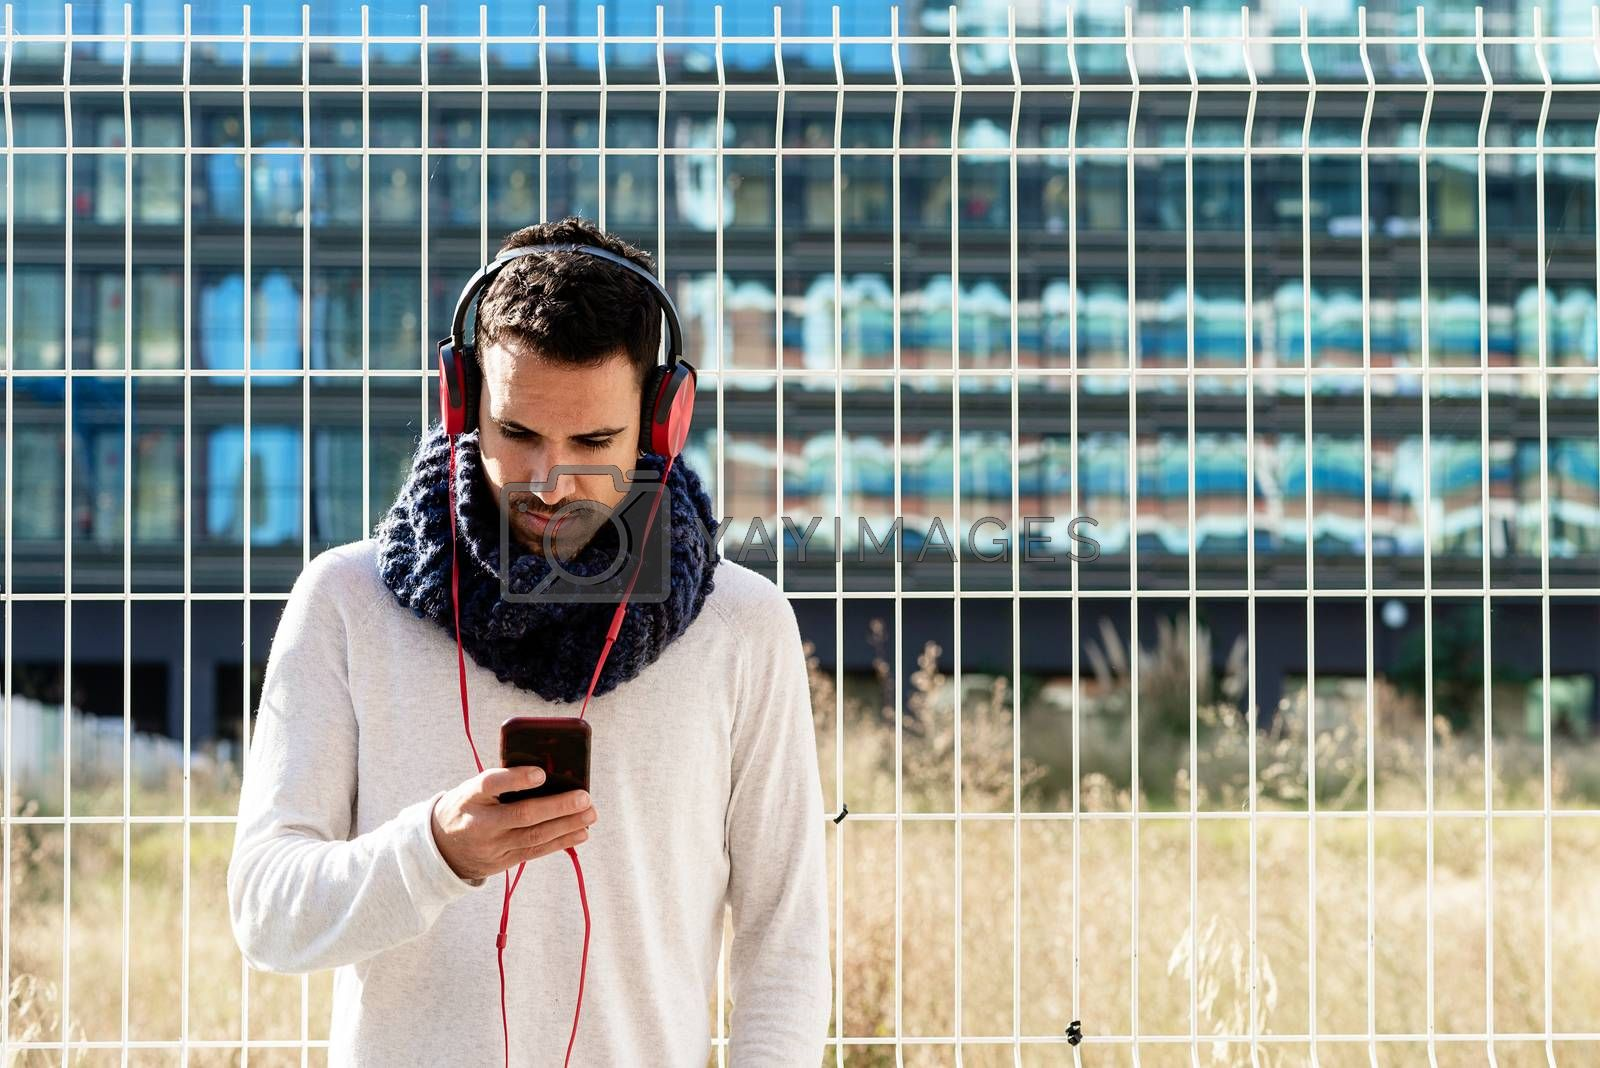 Young bearded man with headphones and holding smartphone while leaning on a metallic fence against skyscrapers in sunny day